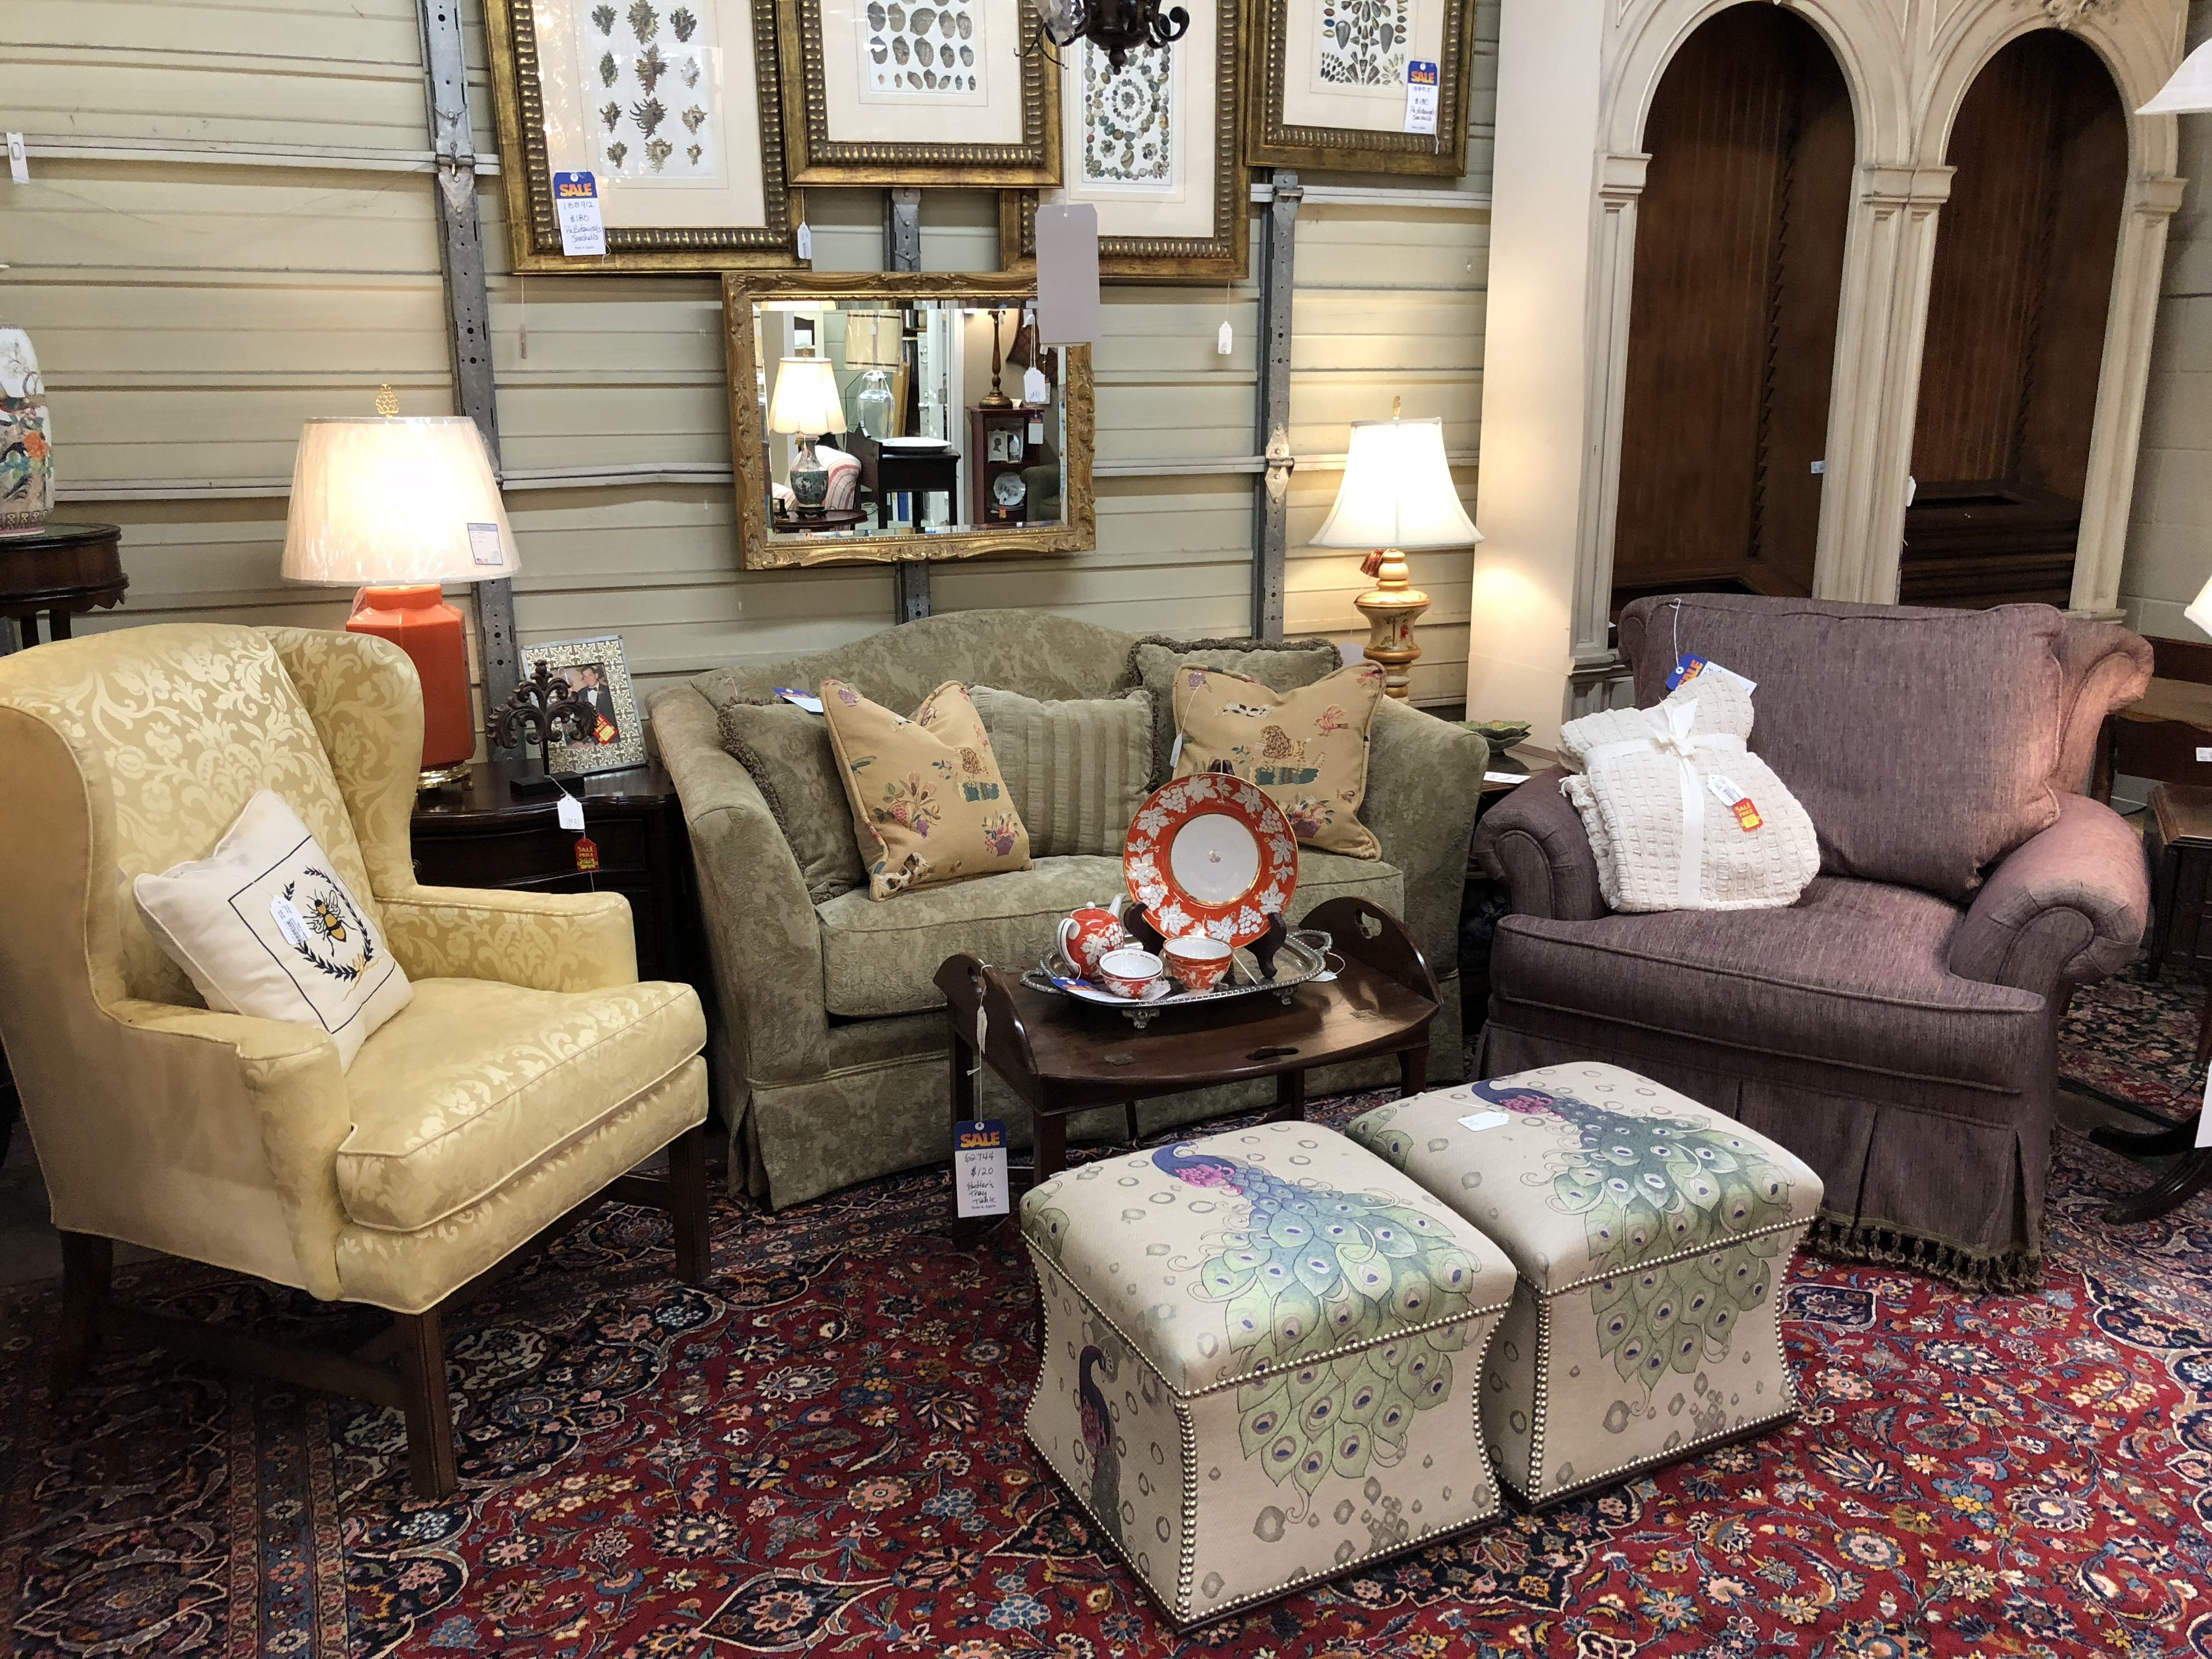 Now again consignments living room essentials